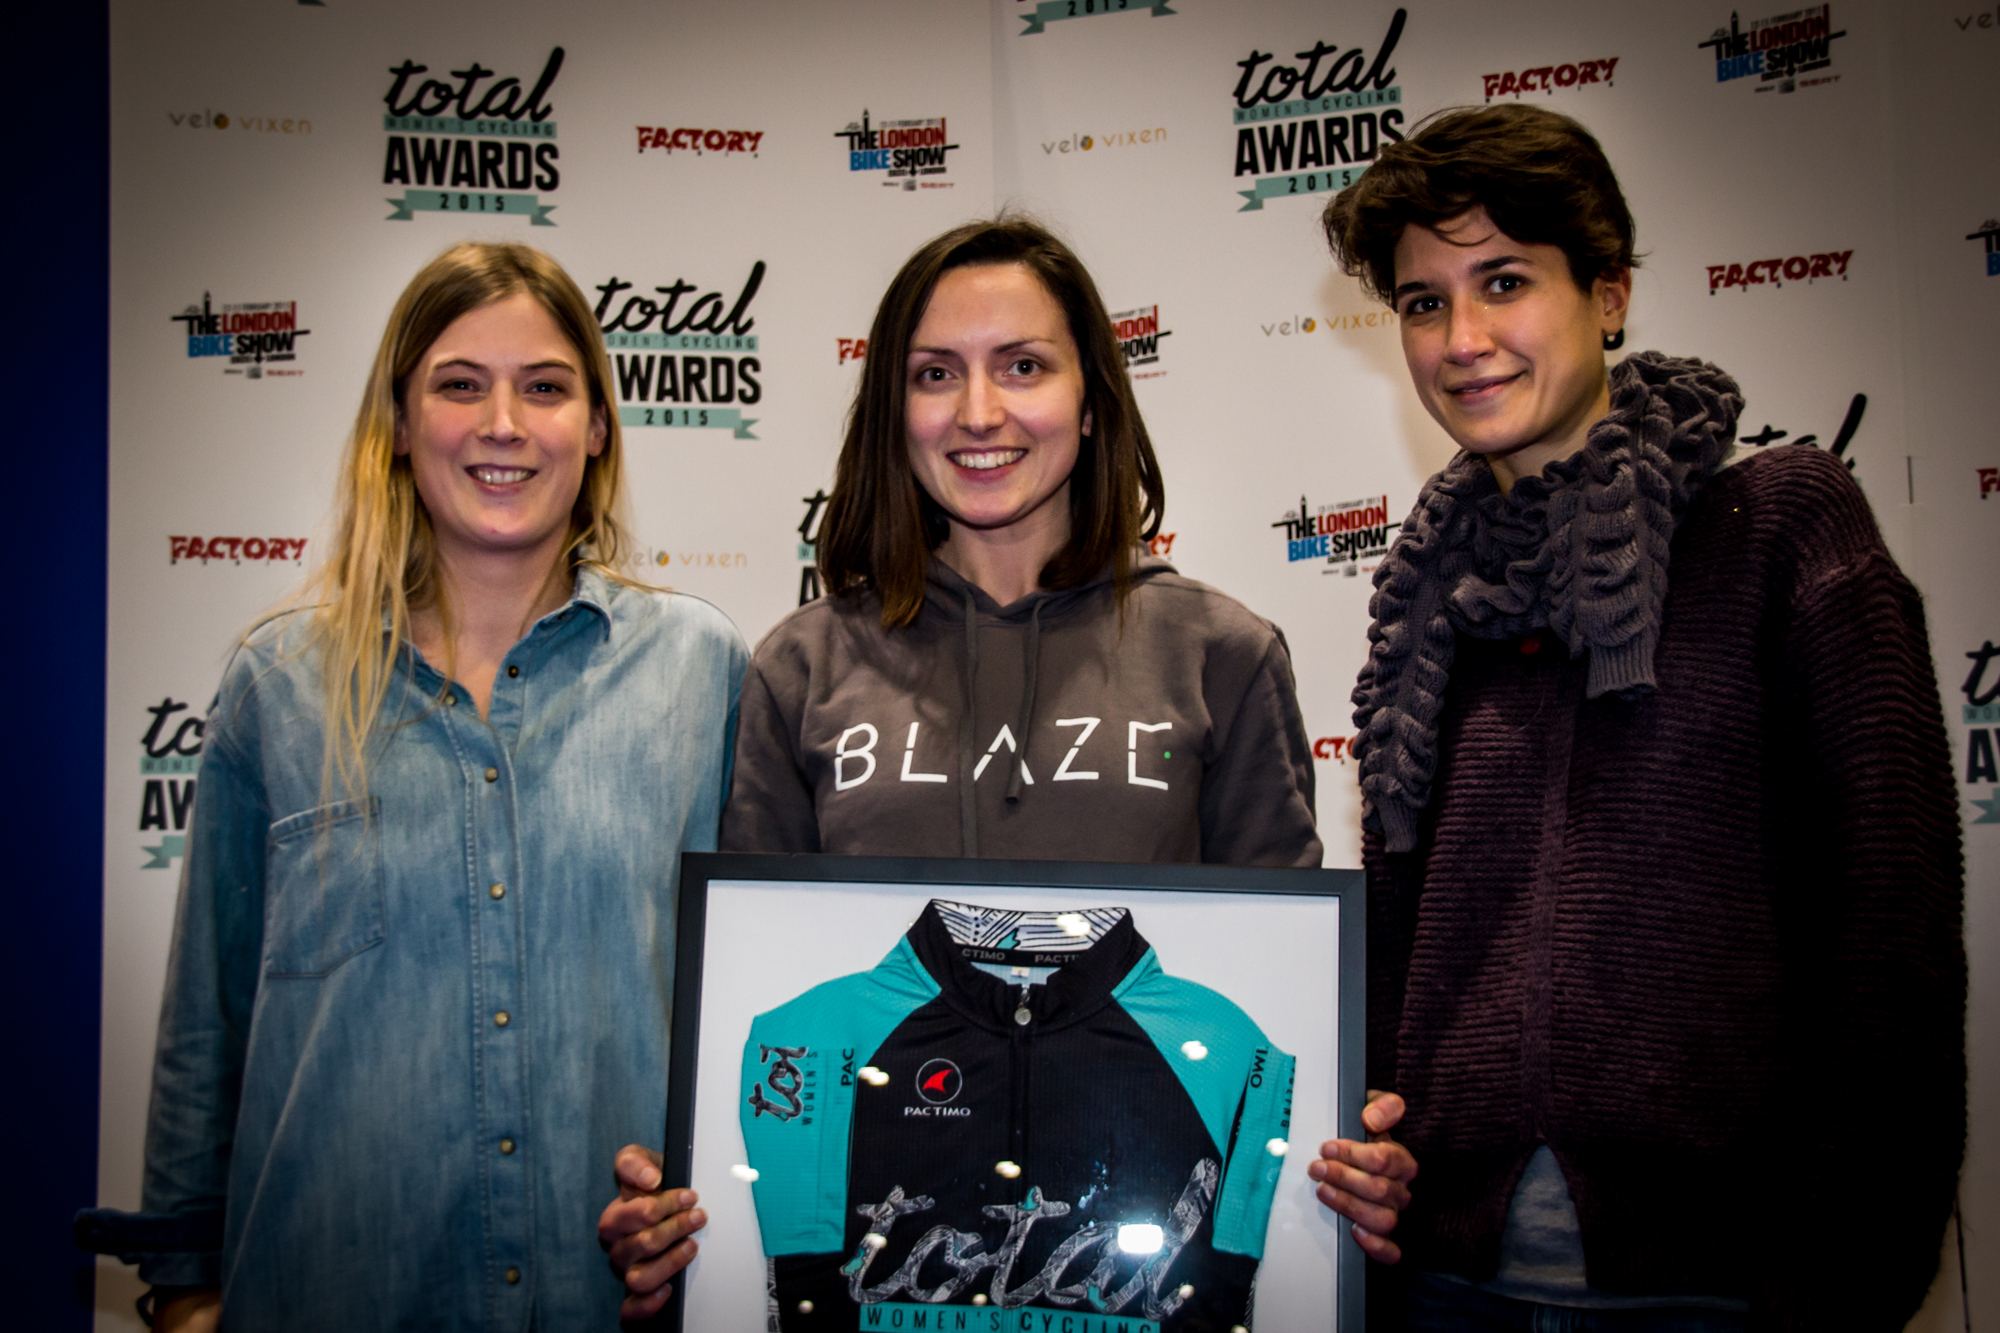 total women's cycling awards